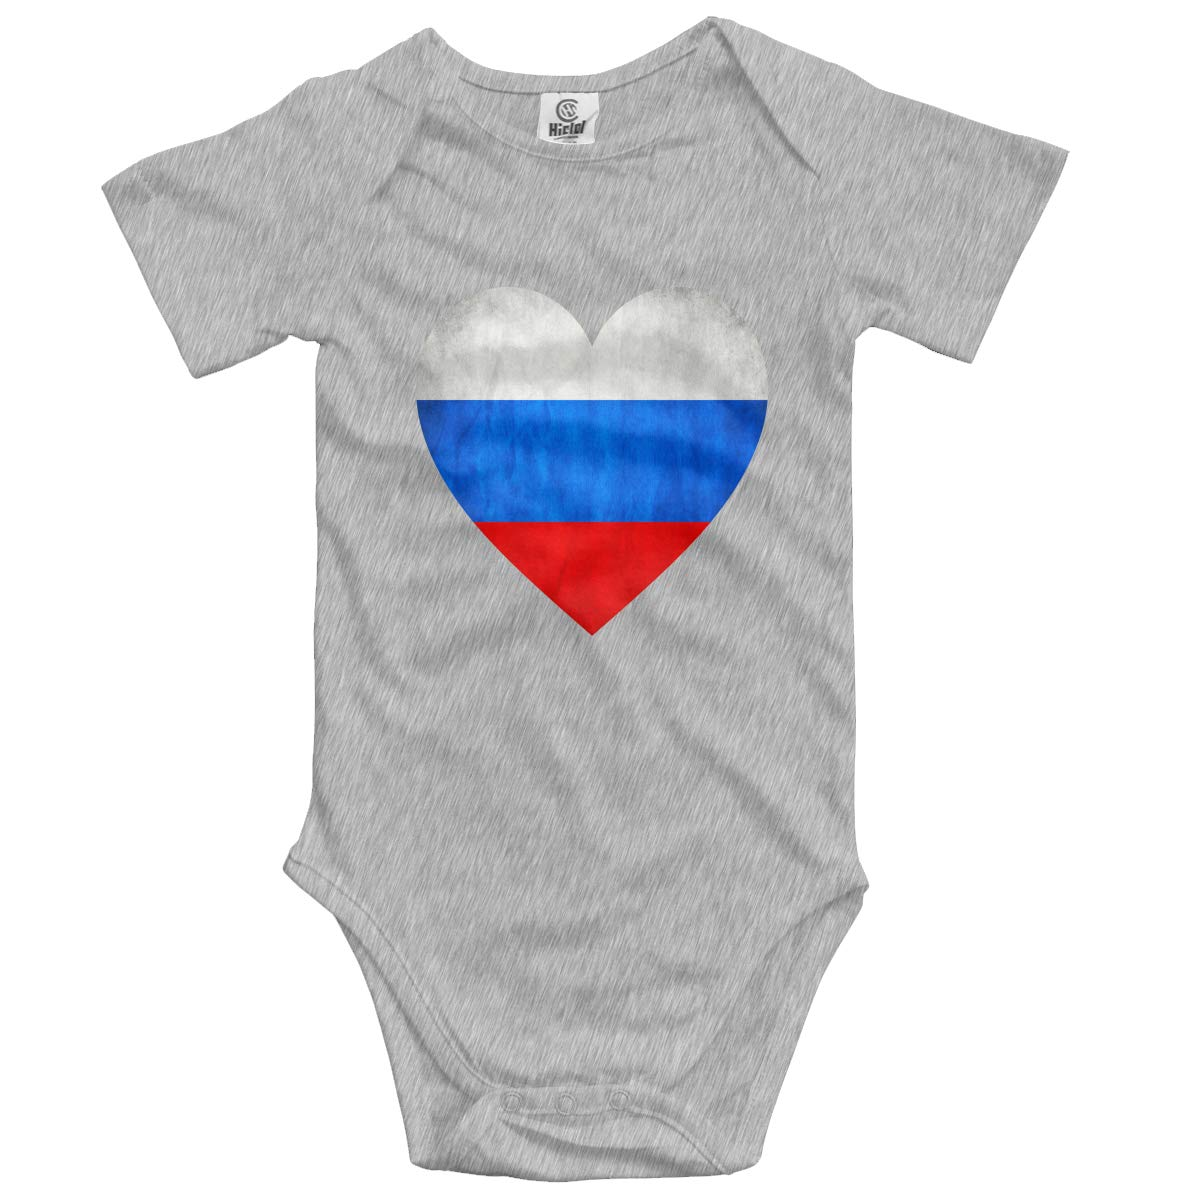 CUTEDWARF Baby Short-Sleeve Onesies Love Vintage Russian Flag Bodysuit Baby Outfits